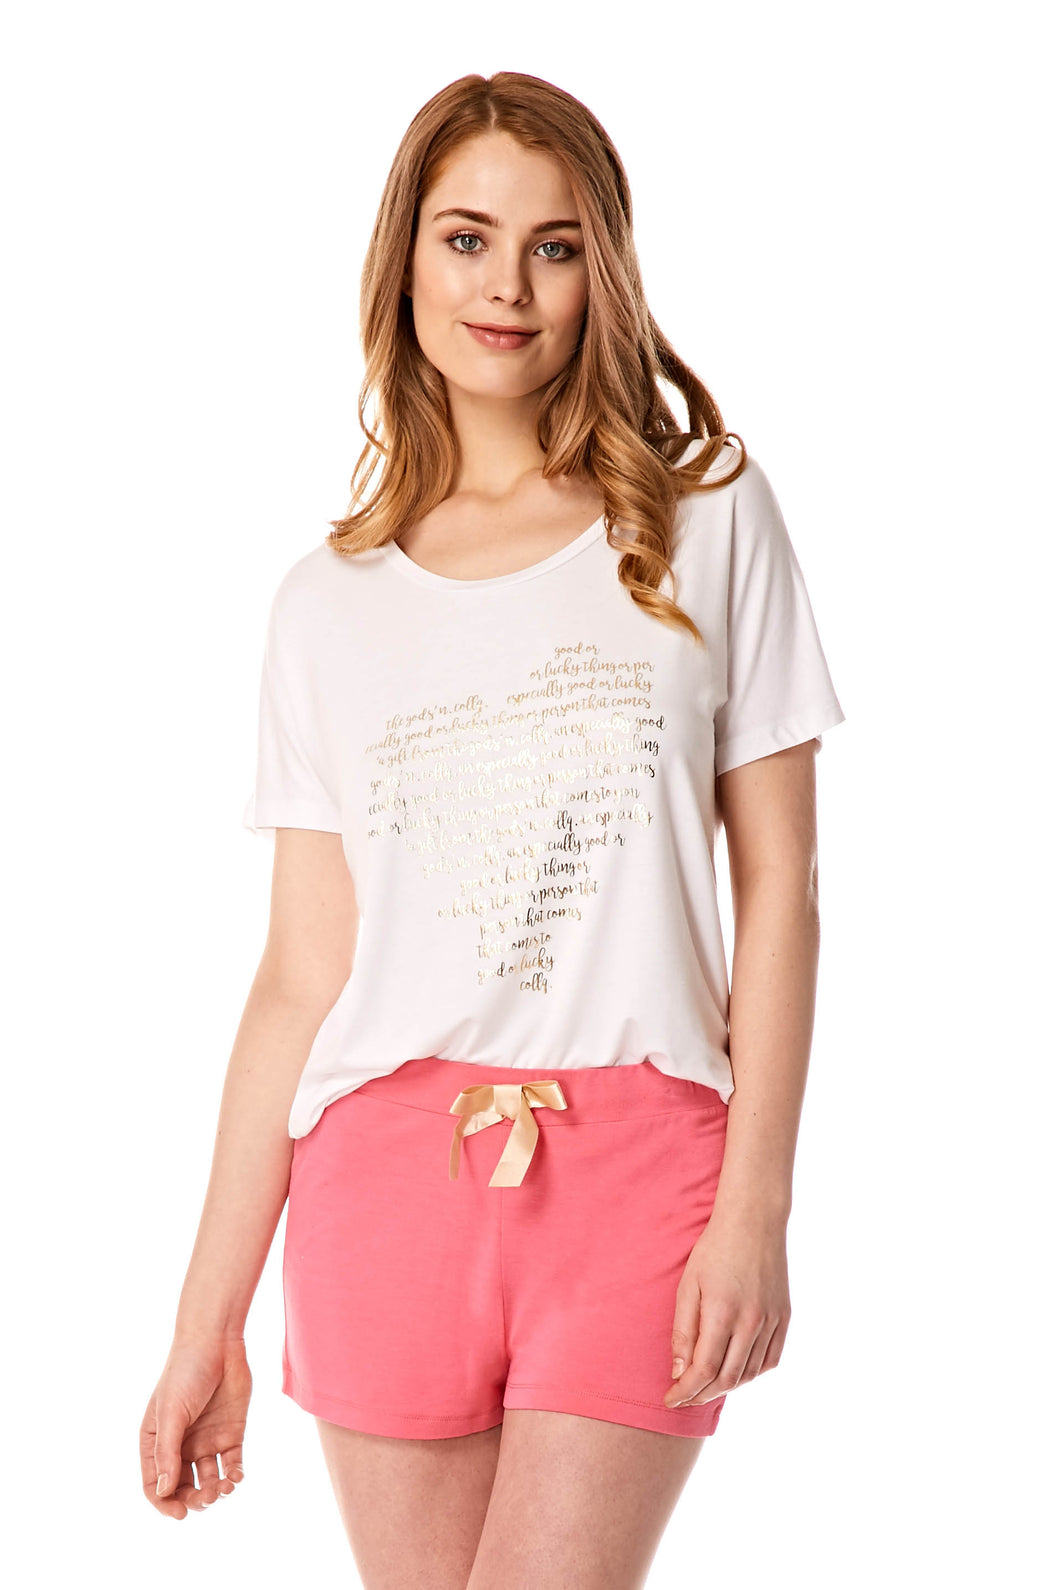 A Gift From The Gods Gold Heart Shorts Set White Pink PJs